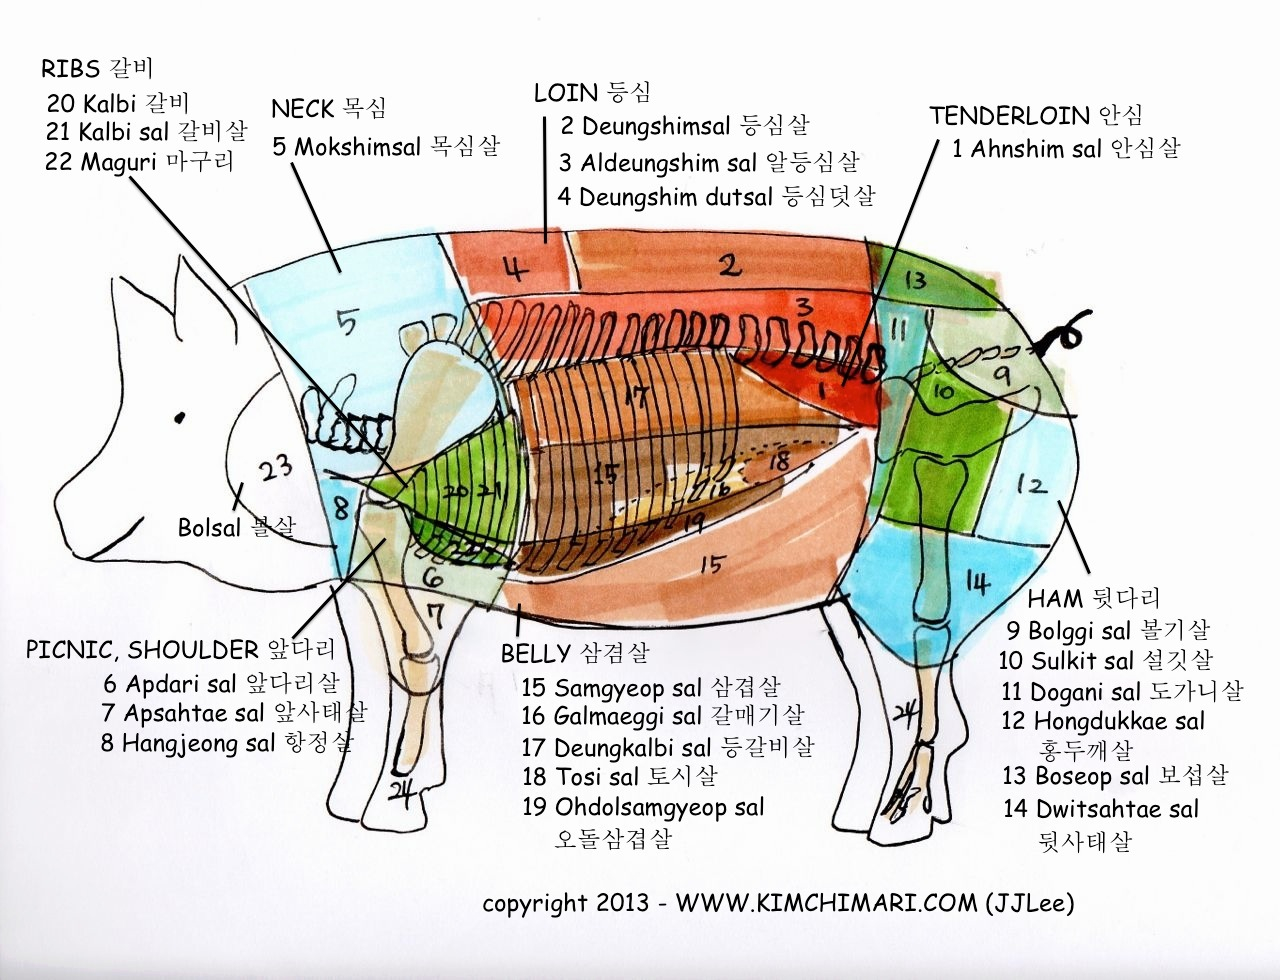 hight resolution of korean pork cuts diagram by jinjoo lee www kimchimari com